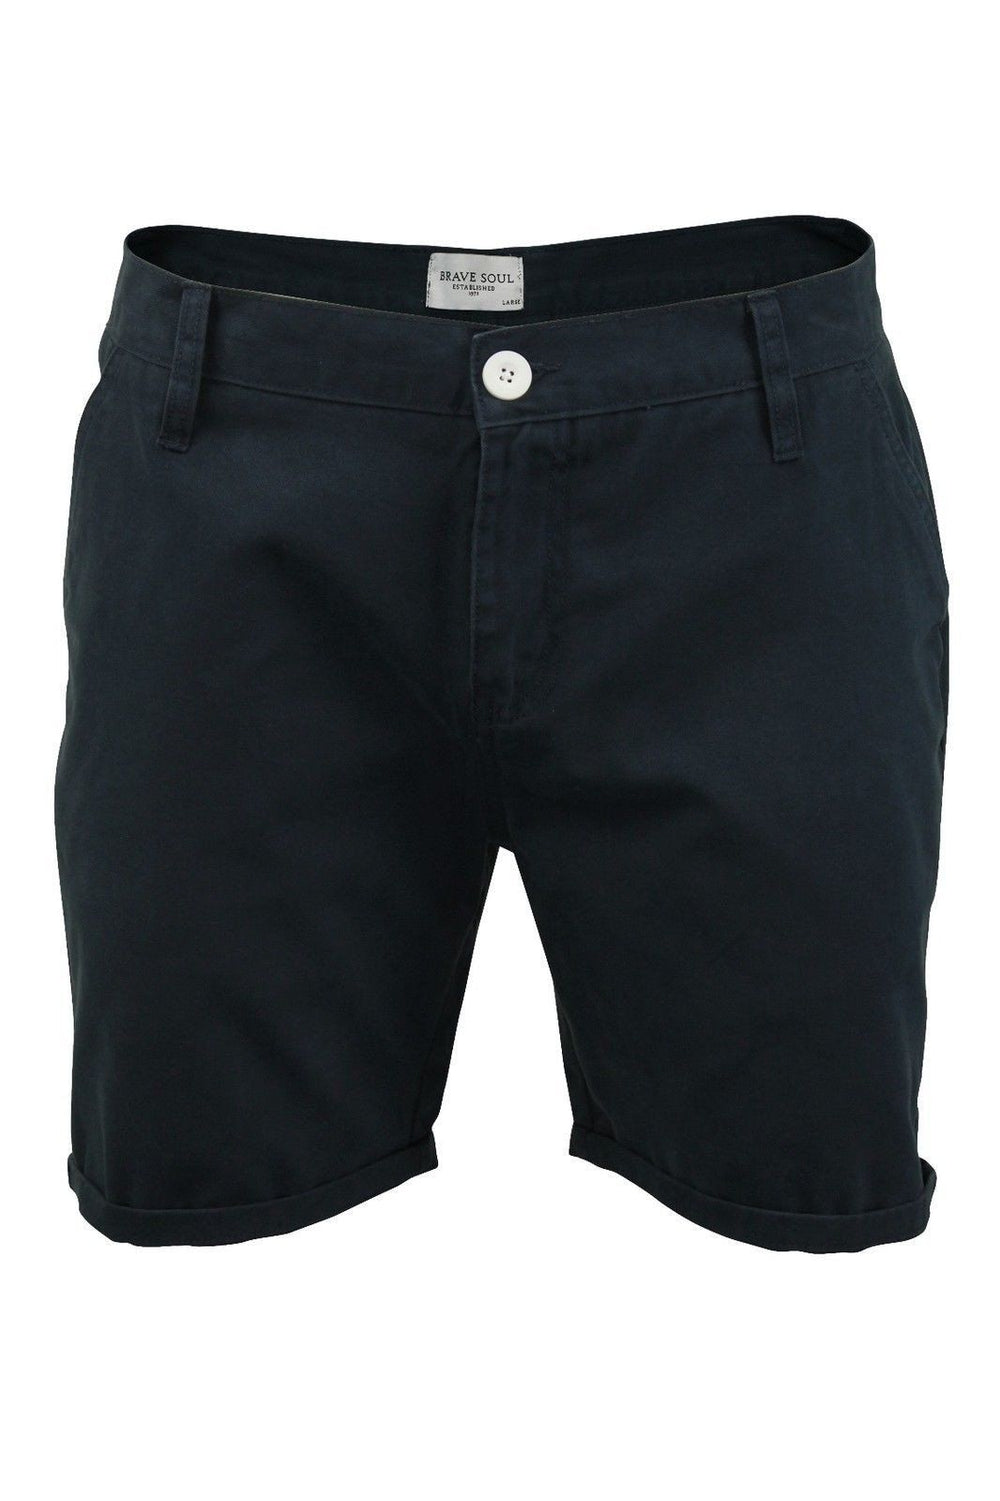 Shorts - O Skinny Chino Shorts Navy XL